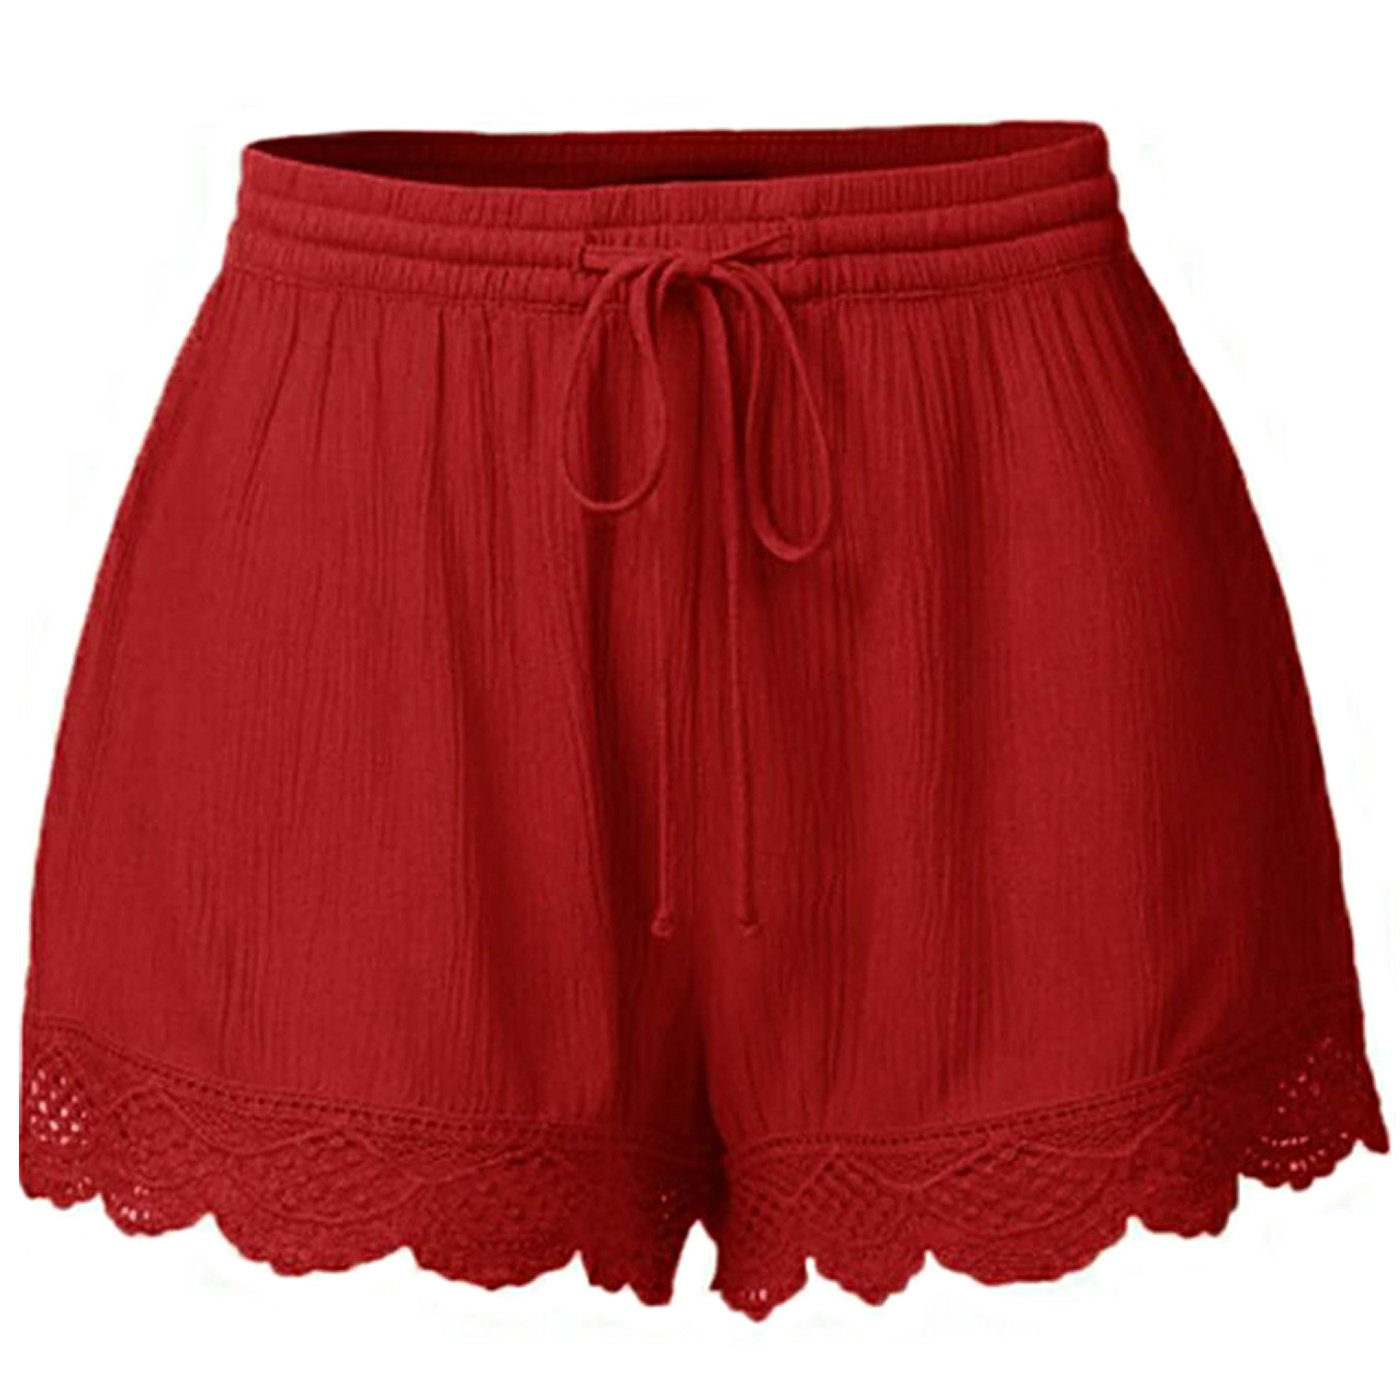 Just For Future Women's Plus Size Casual Drawstring Elastic Waist Lace Spliced Shorts Pants